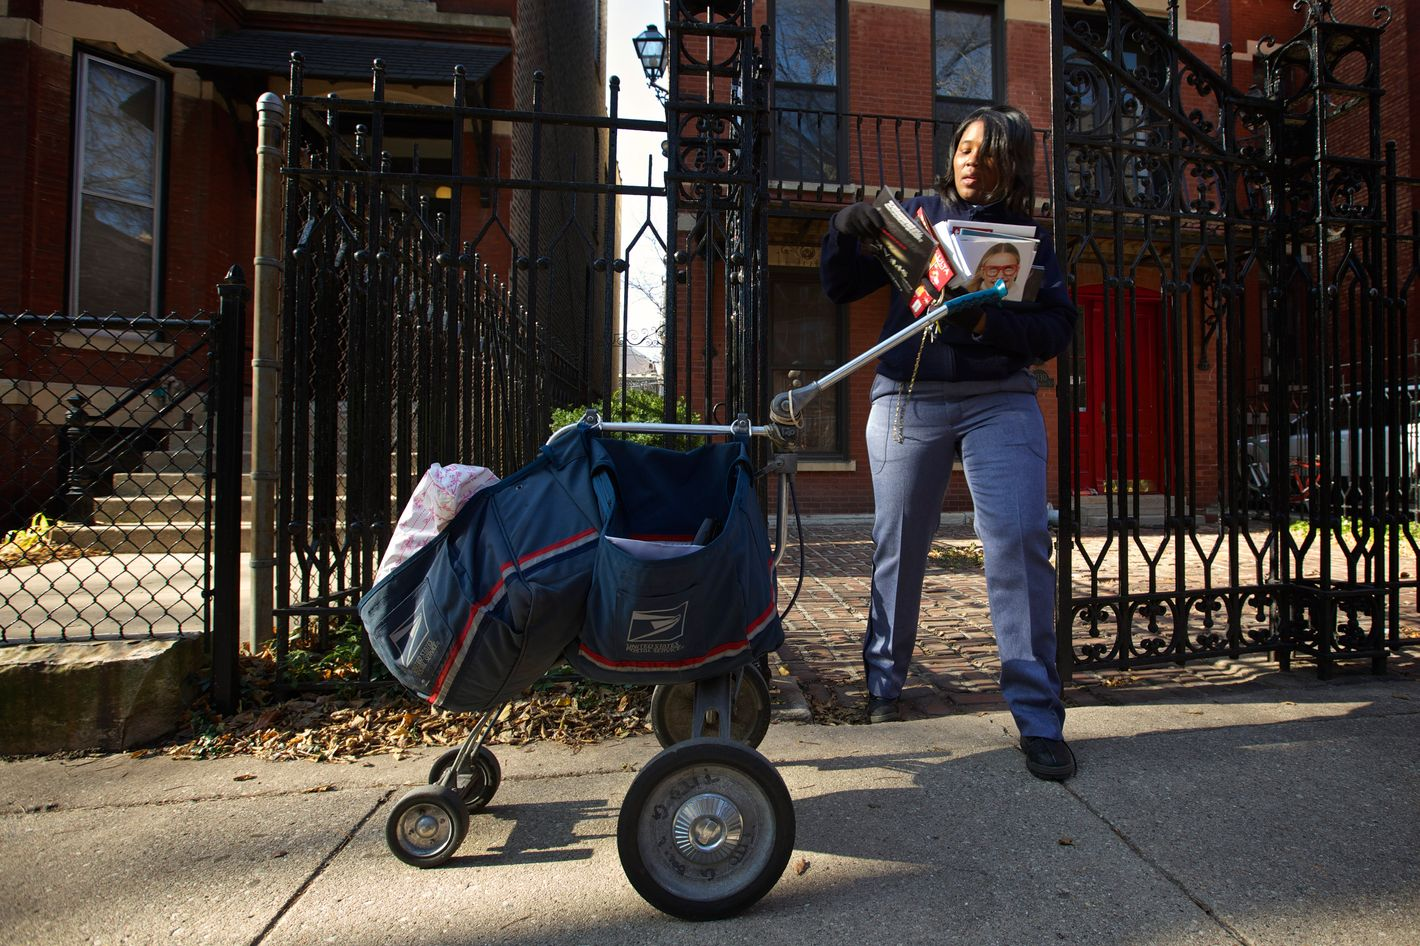 United States Postal Service Letter Carrier Lakesha Dortch-Hardy delivers mail in Chicago, November 29, 2012.United States Postal Service Letter Carrier Lakesha Dortch-Hardy delivers mail in Chicago, November 29, 2012.